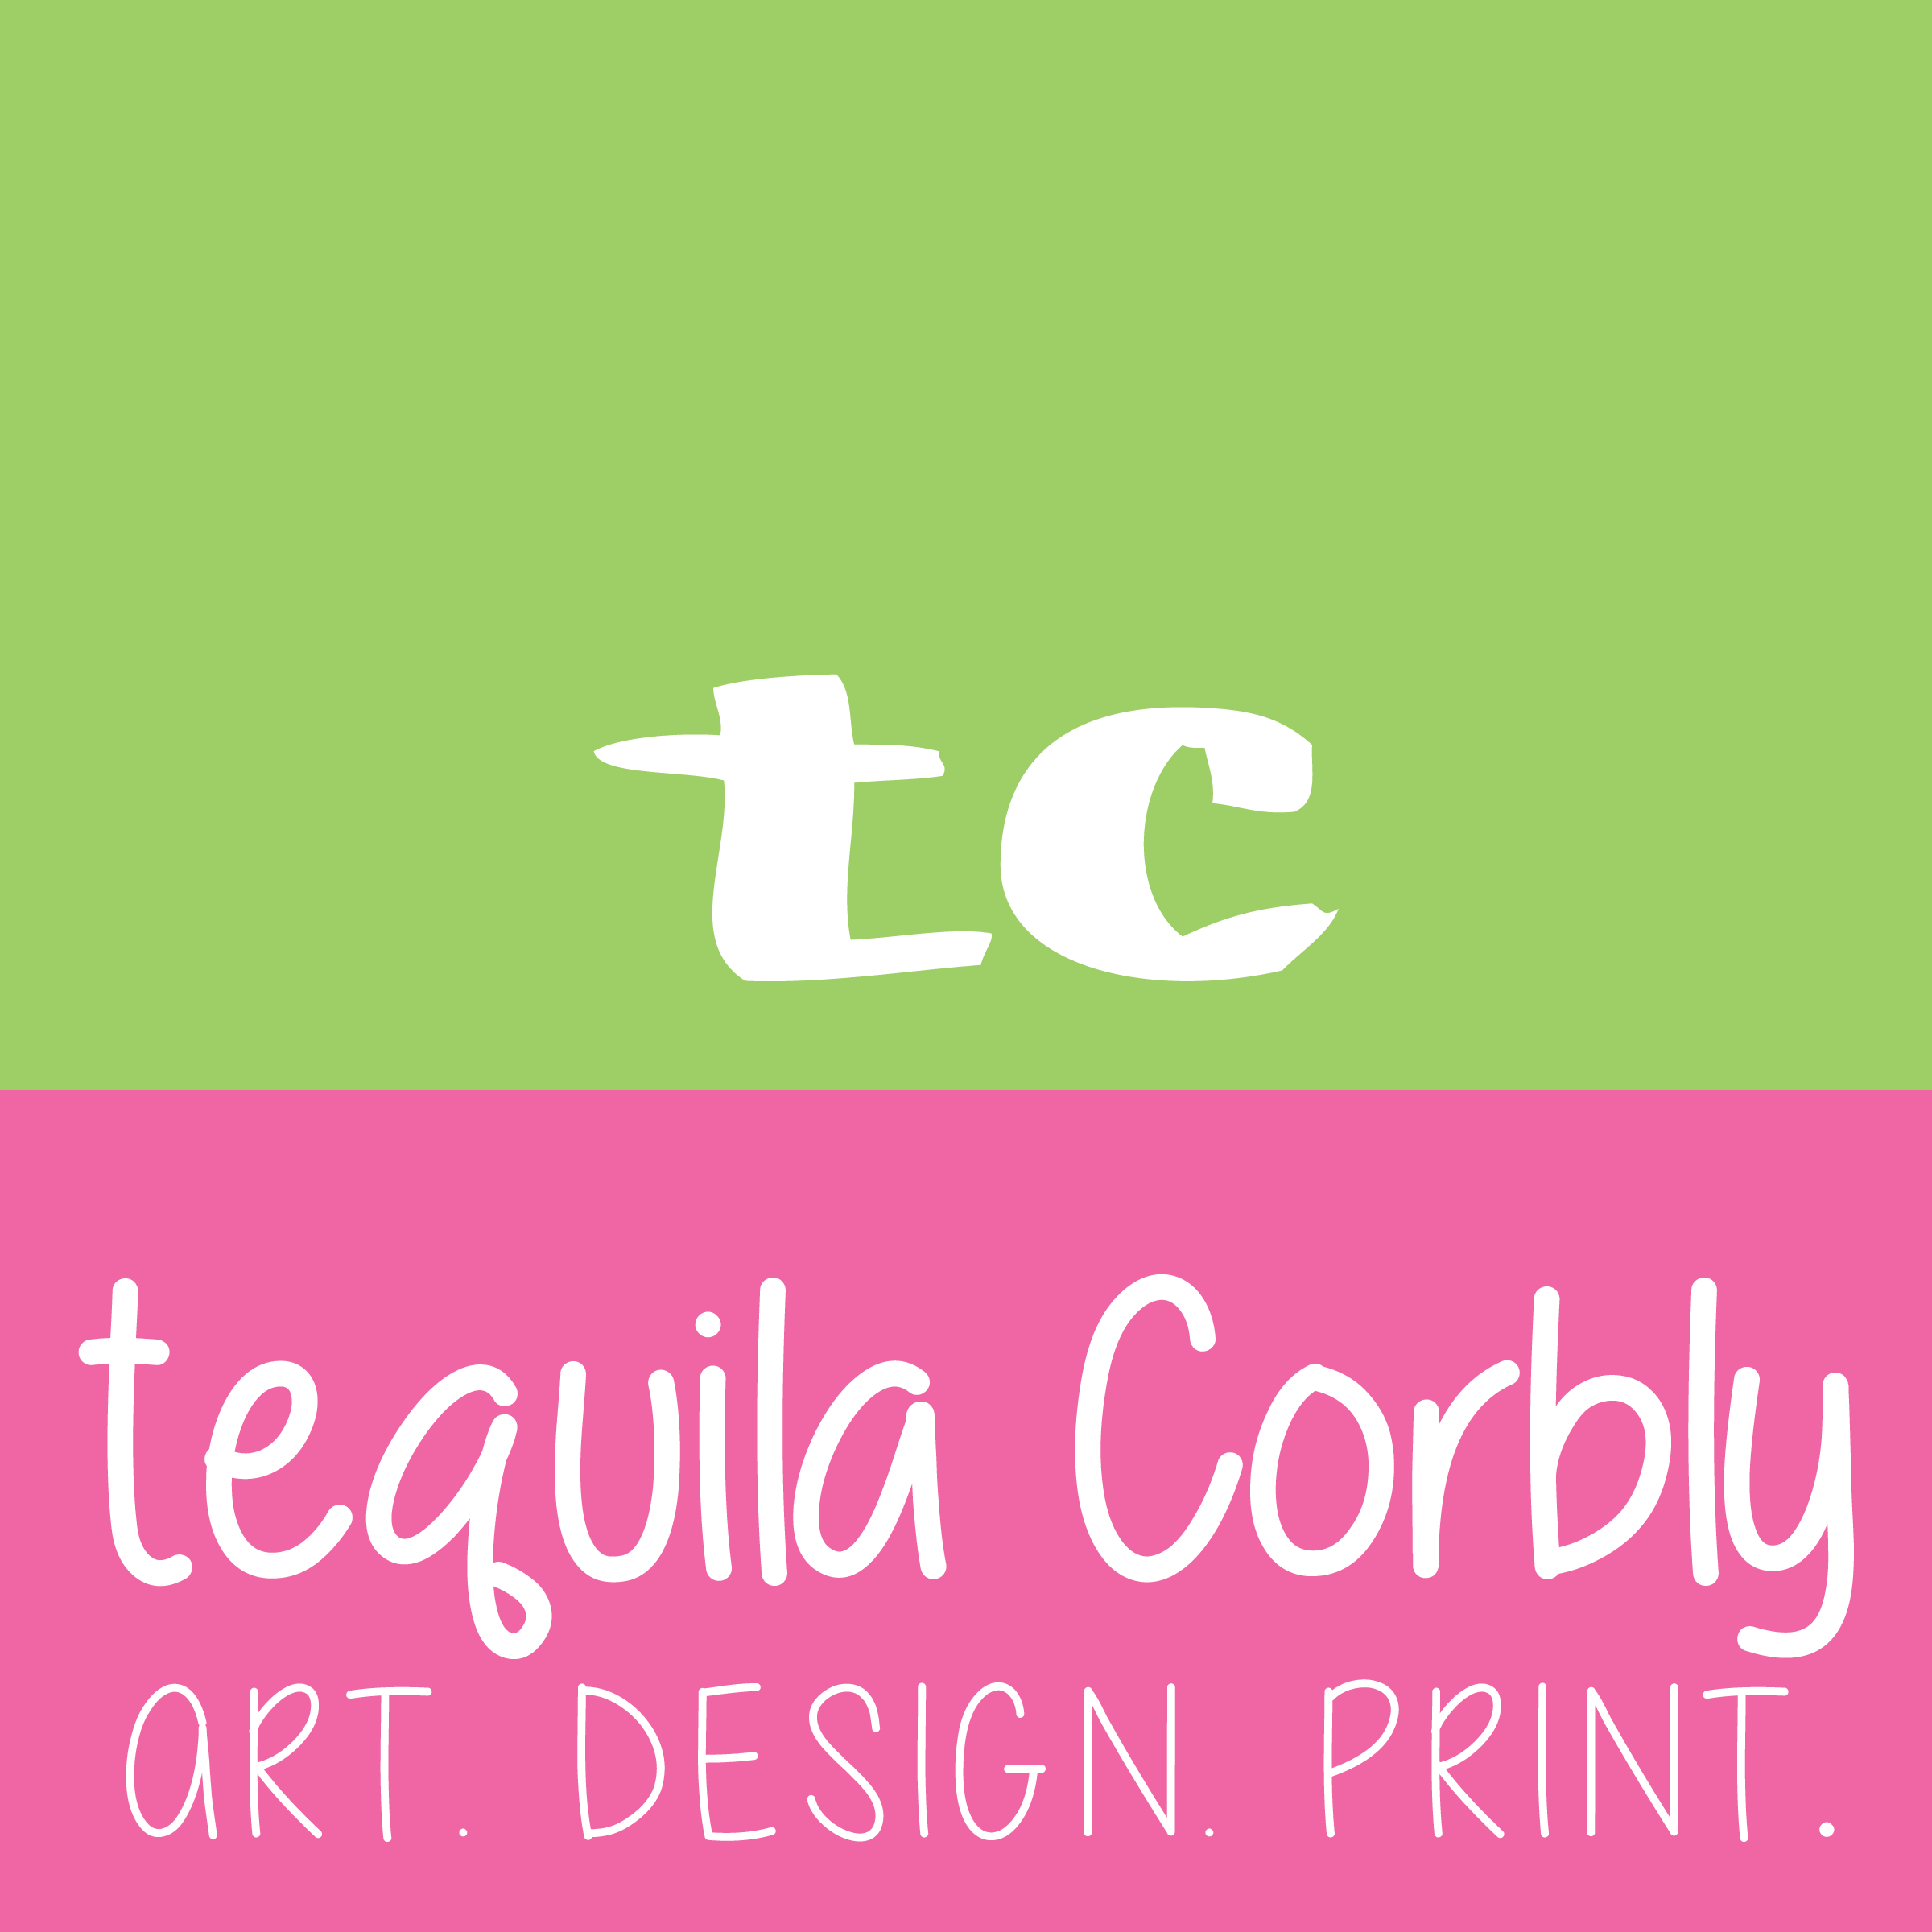 tequila Corbly